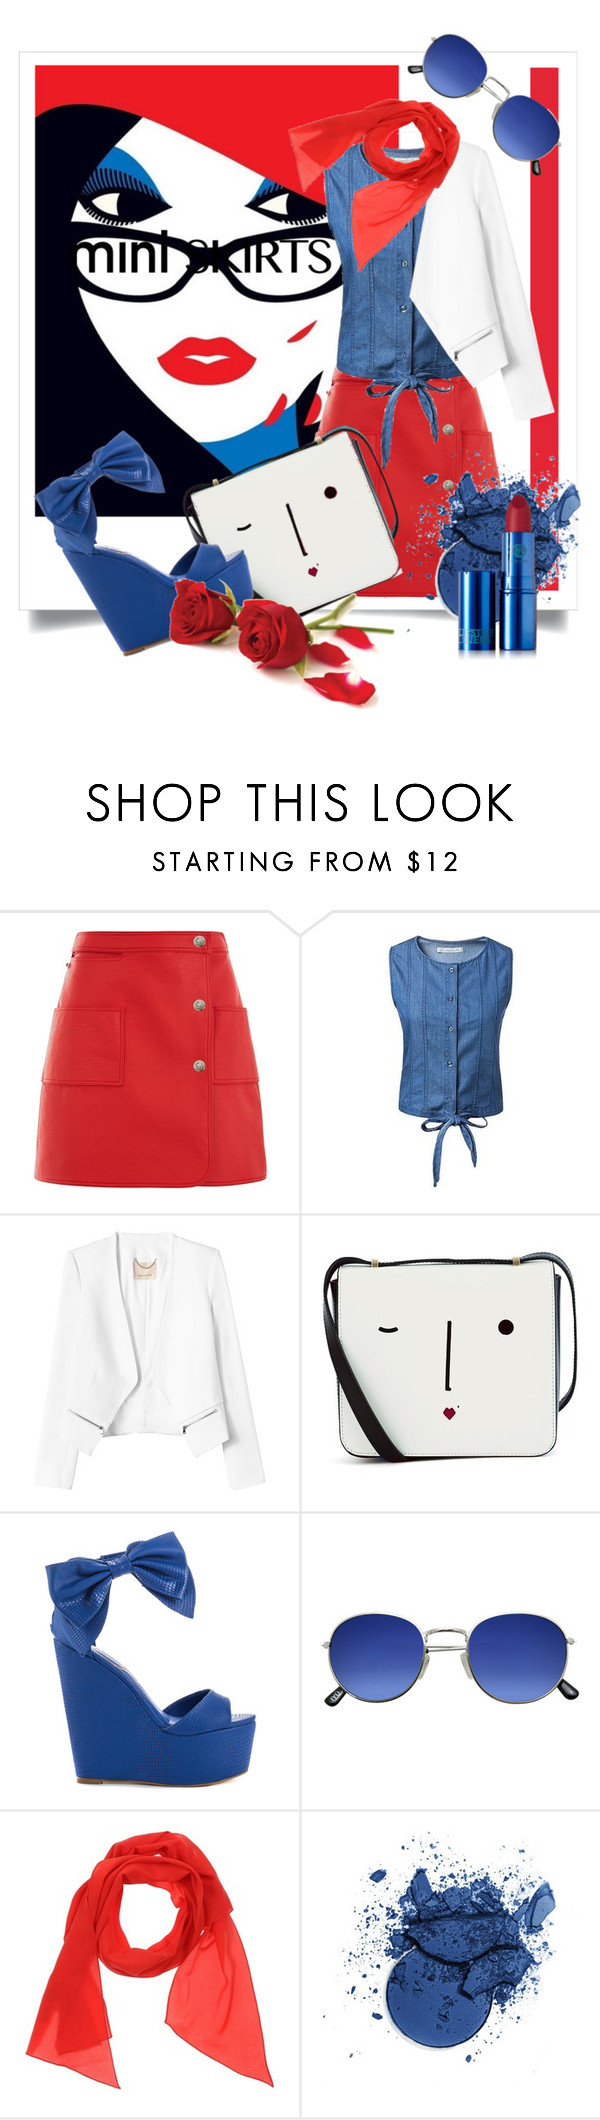 """Miniskirt"" by kari-c ❤ liked on Polyvore featuring Courrèges, Rebecca Taylor, Lulu Guinness, Privileged, Marni, Lipstick Queen and MINISKIRT"